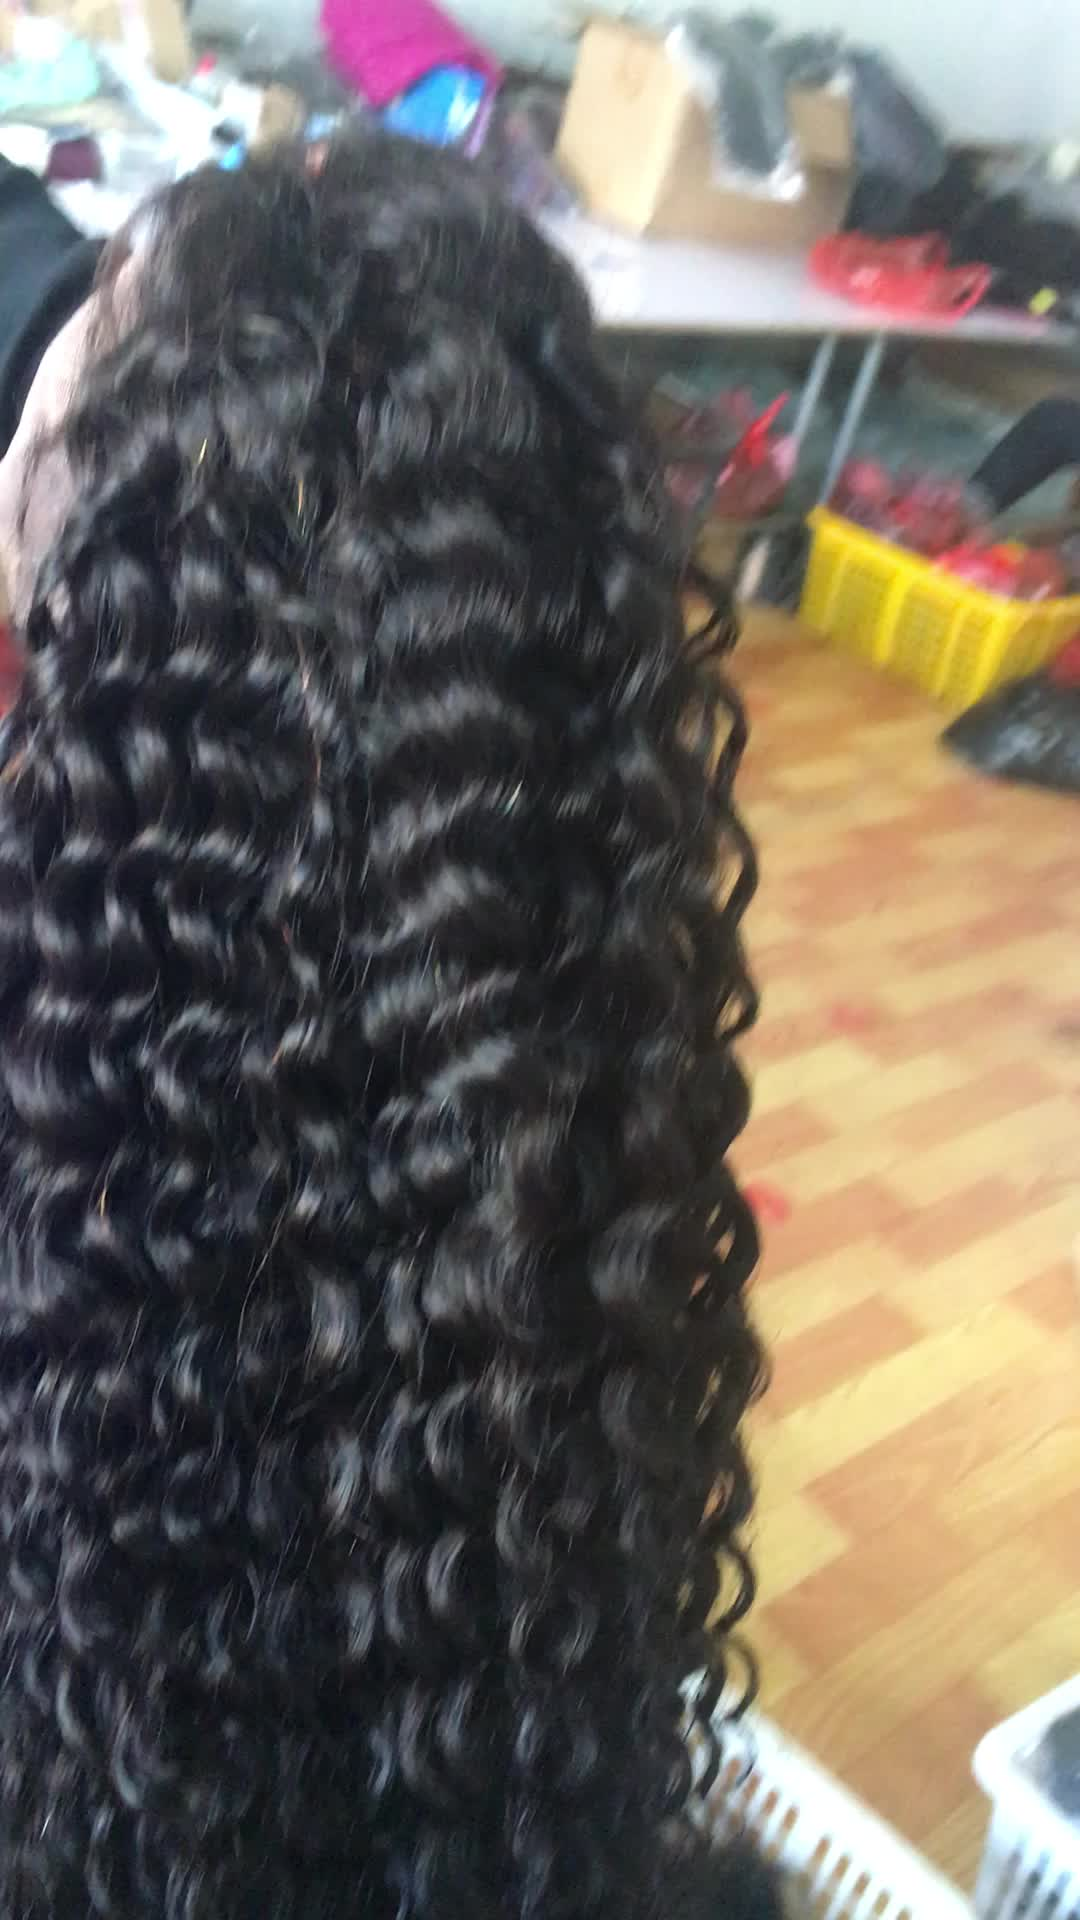 Factory Afro Curly Brazilian Frontal Wigs 100% Virgin Human Hair Lace Front Wigs For Black Women With Baby Hair